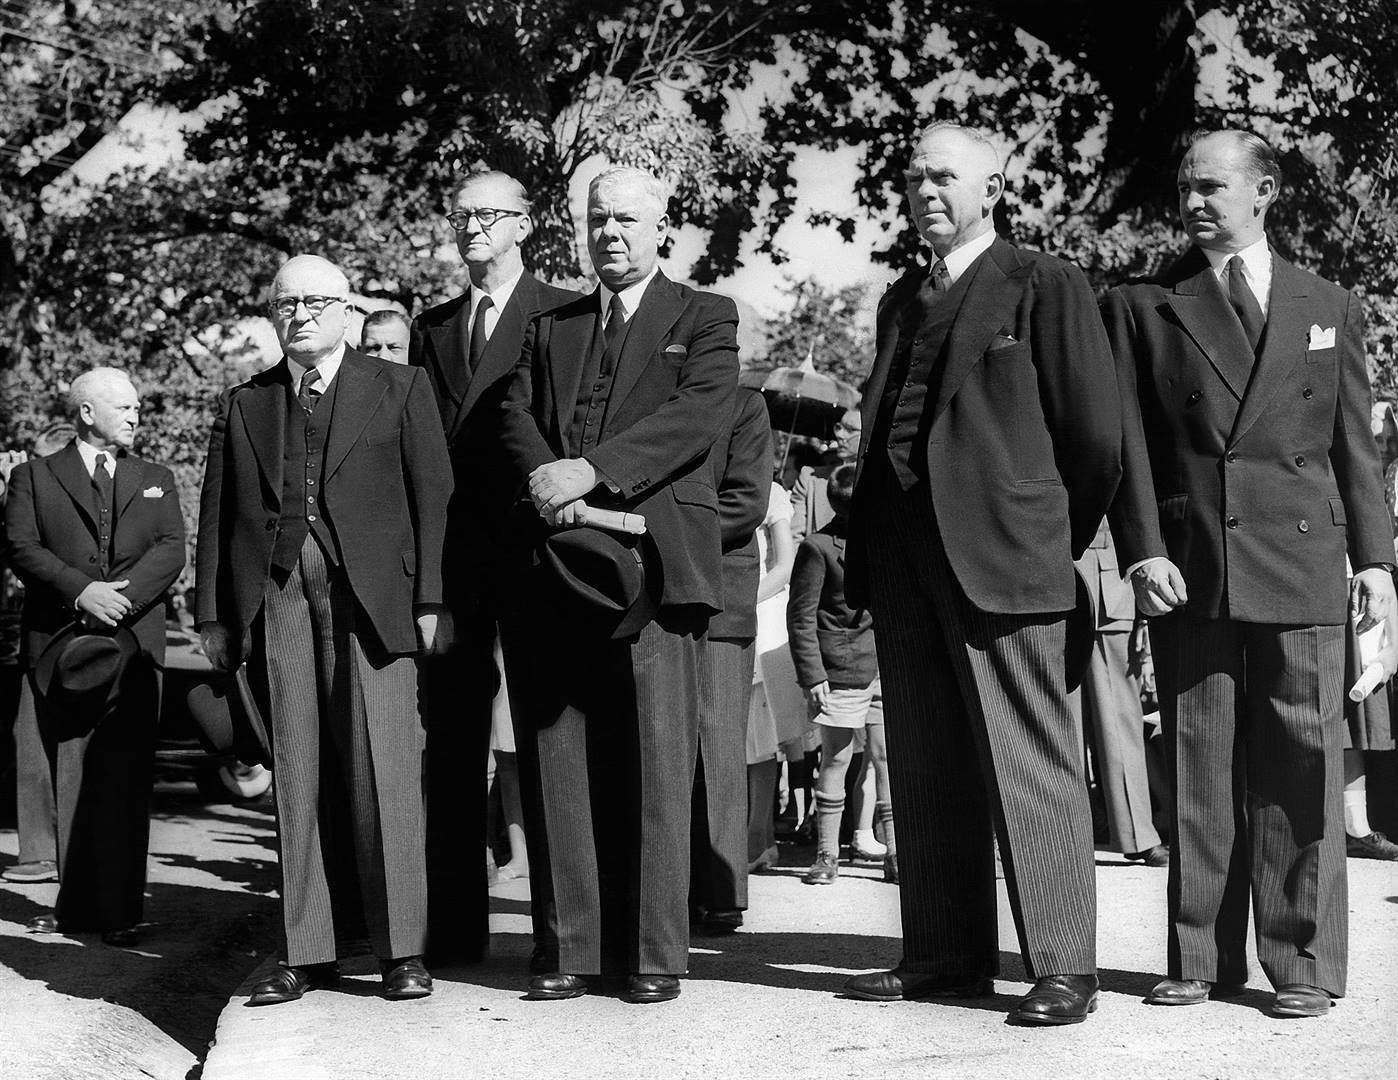 The bad old days: February 1959. Former South African Prime Minister, DF Malan's, funeral in Stellenbosch. In the centre is the then new Prime Minister, Hendrik Verwoerd. (Media24)